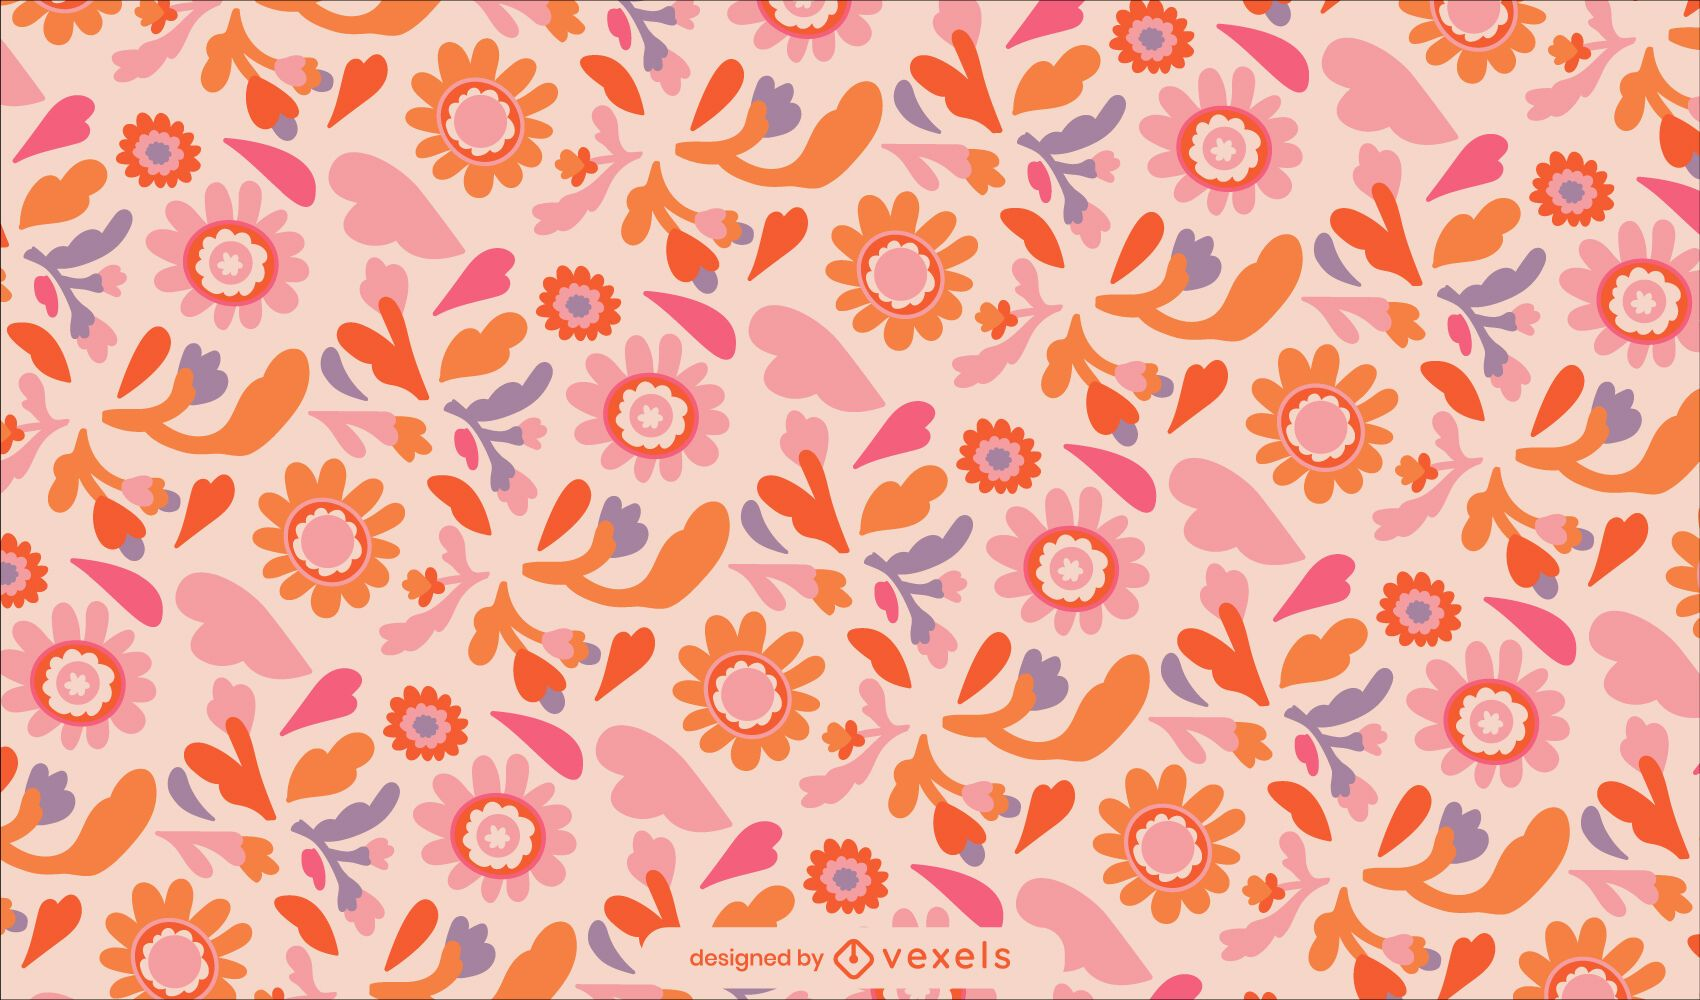 Peace day floral nature pattern design